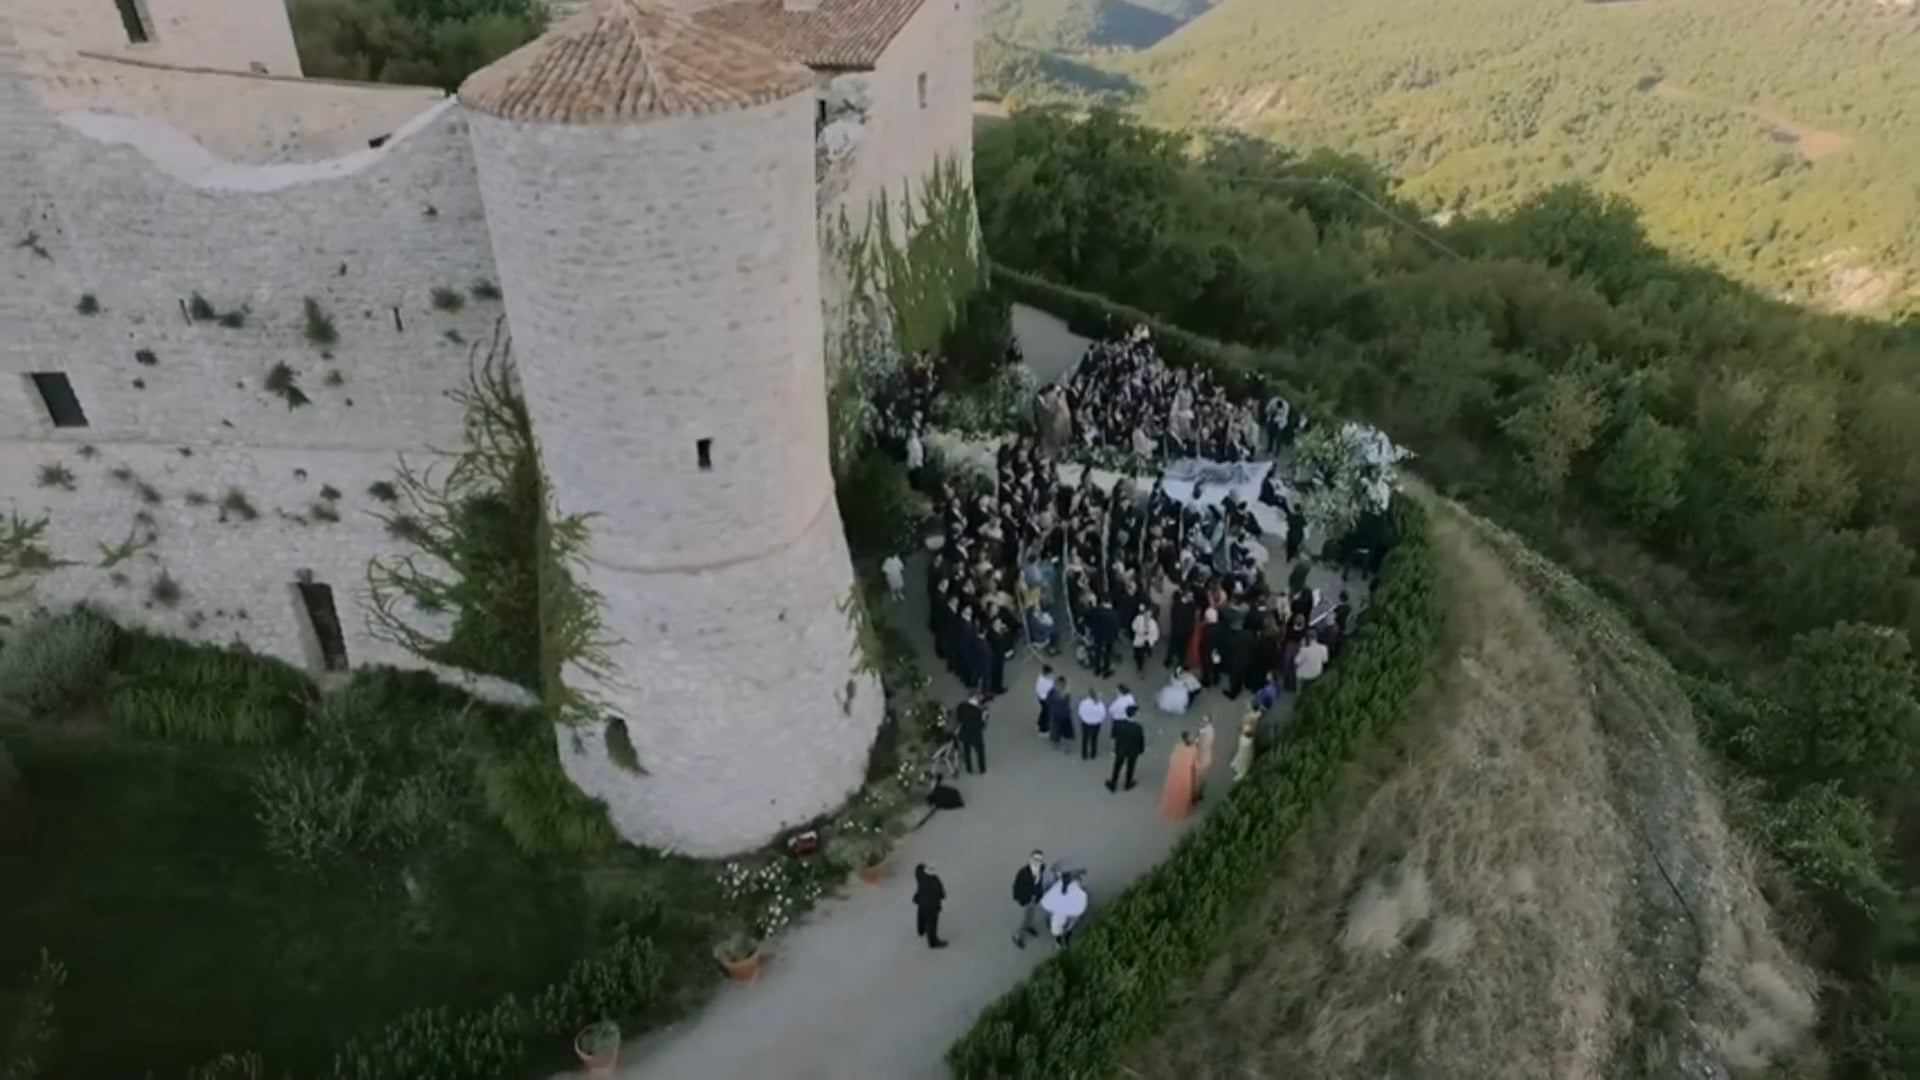 Breathtaking drone destination wedding video at a Middle Age Tower on the mountainside. Stunning location at Outer Mani, Greece